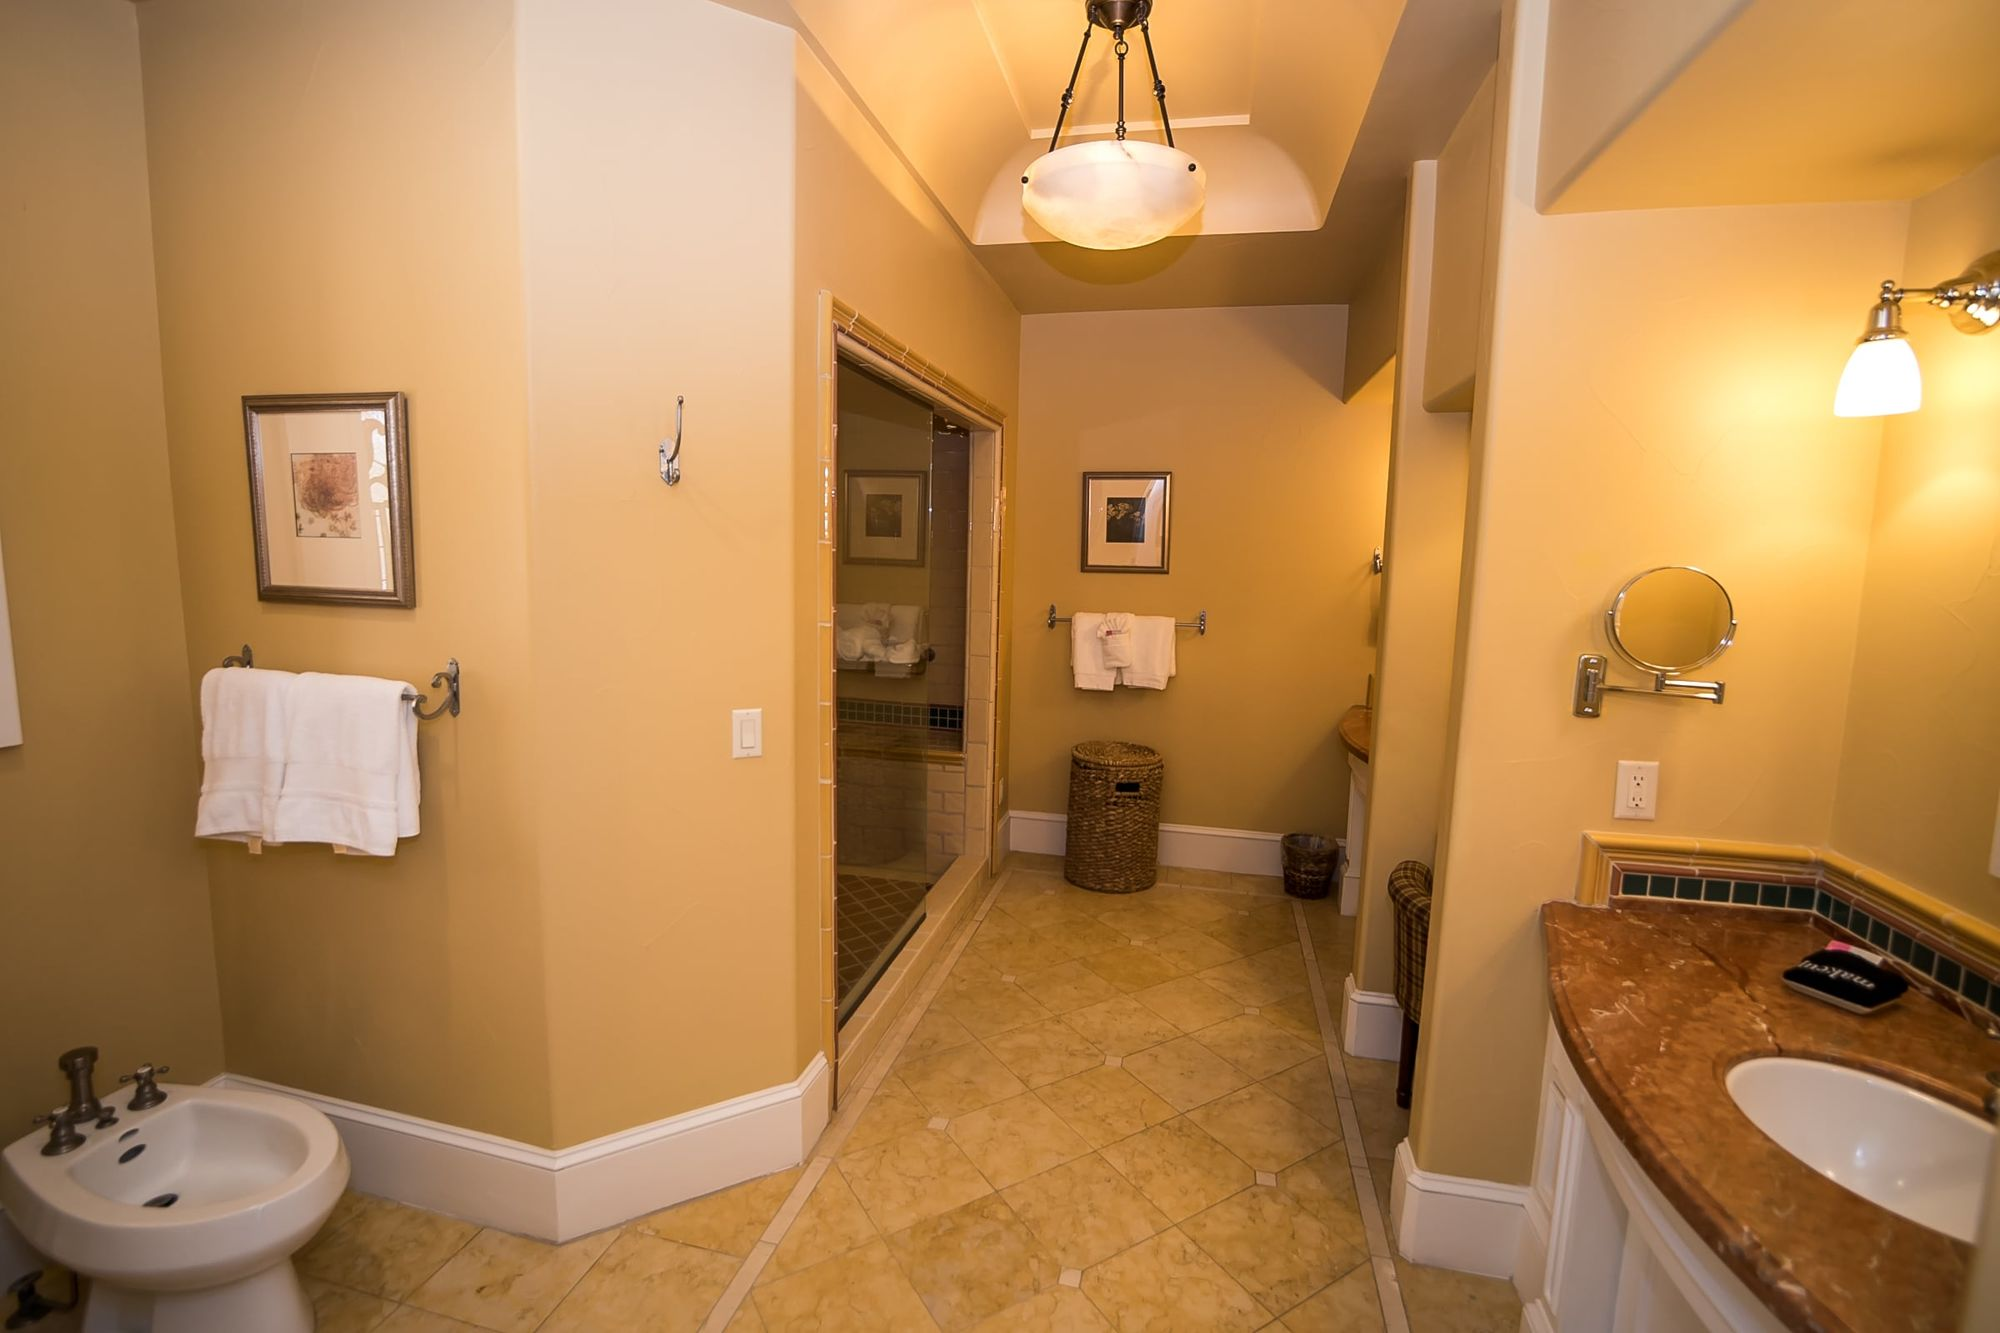 Bathroom with bidet to left and vanity to the right